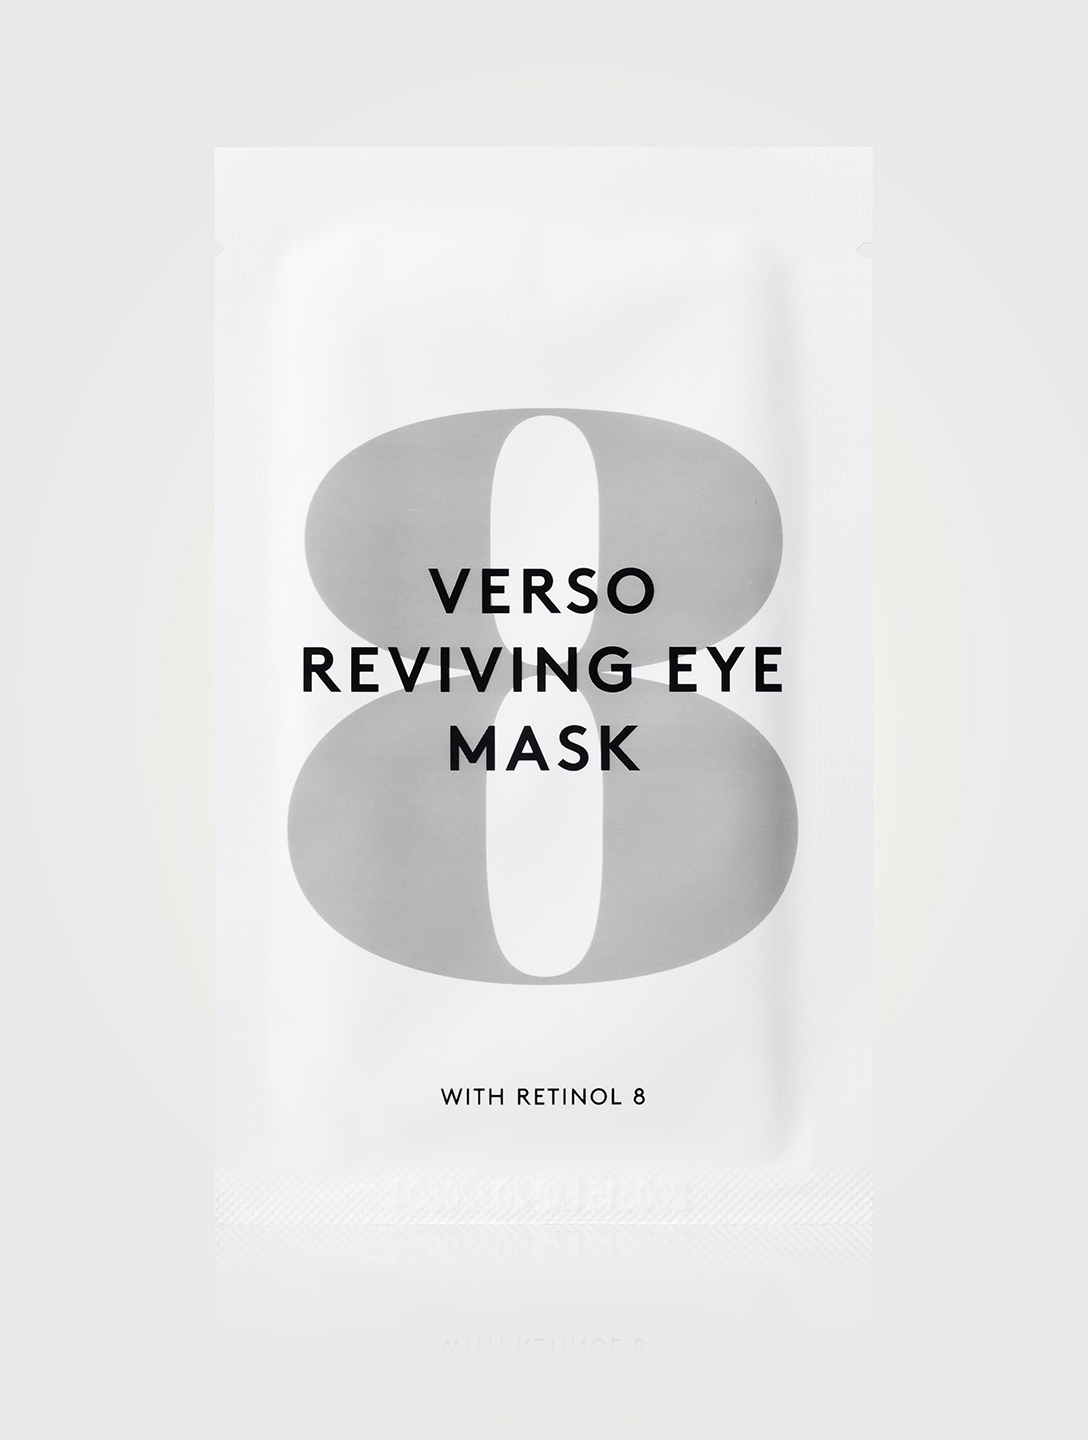 VERSO Reviving Eye Mask Beauty